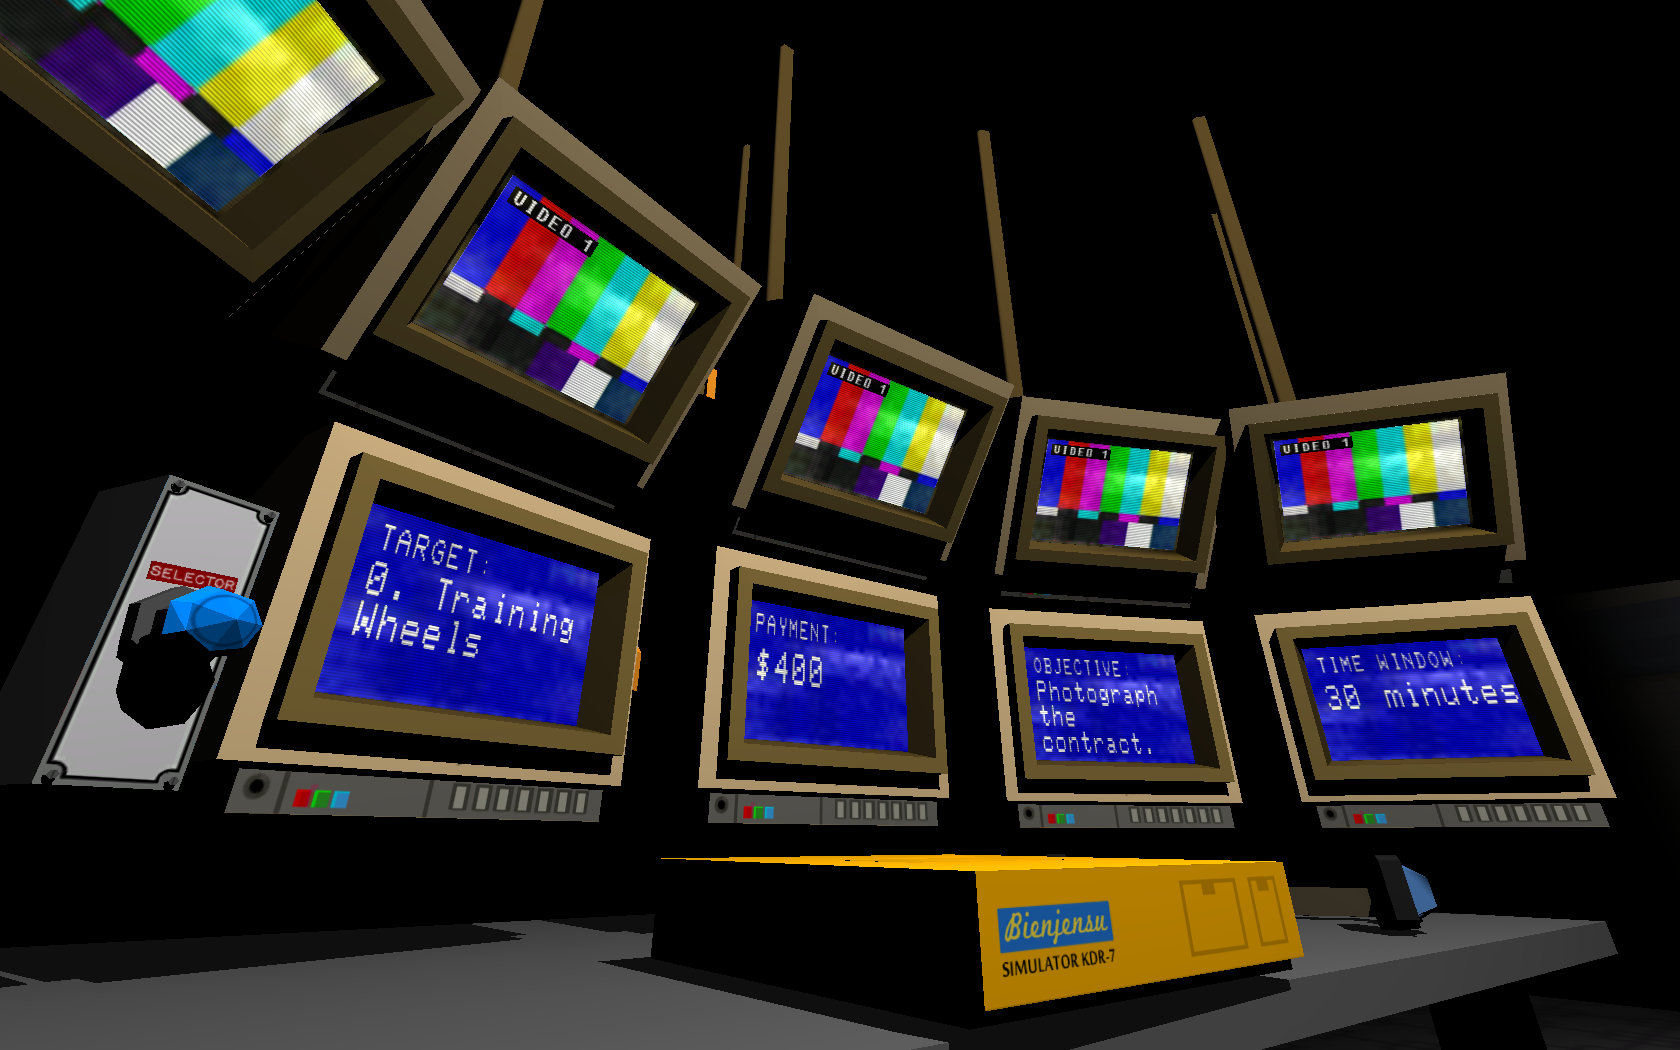 Quadrilateral cowboy | download full version | nullgame. Com.